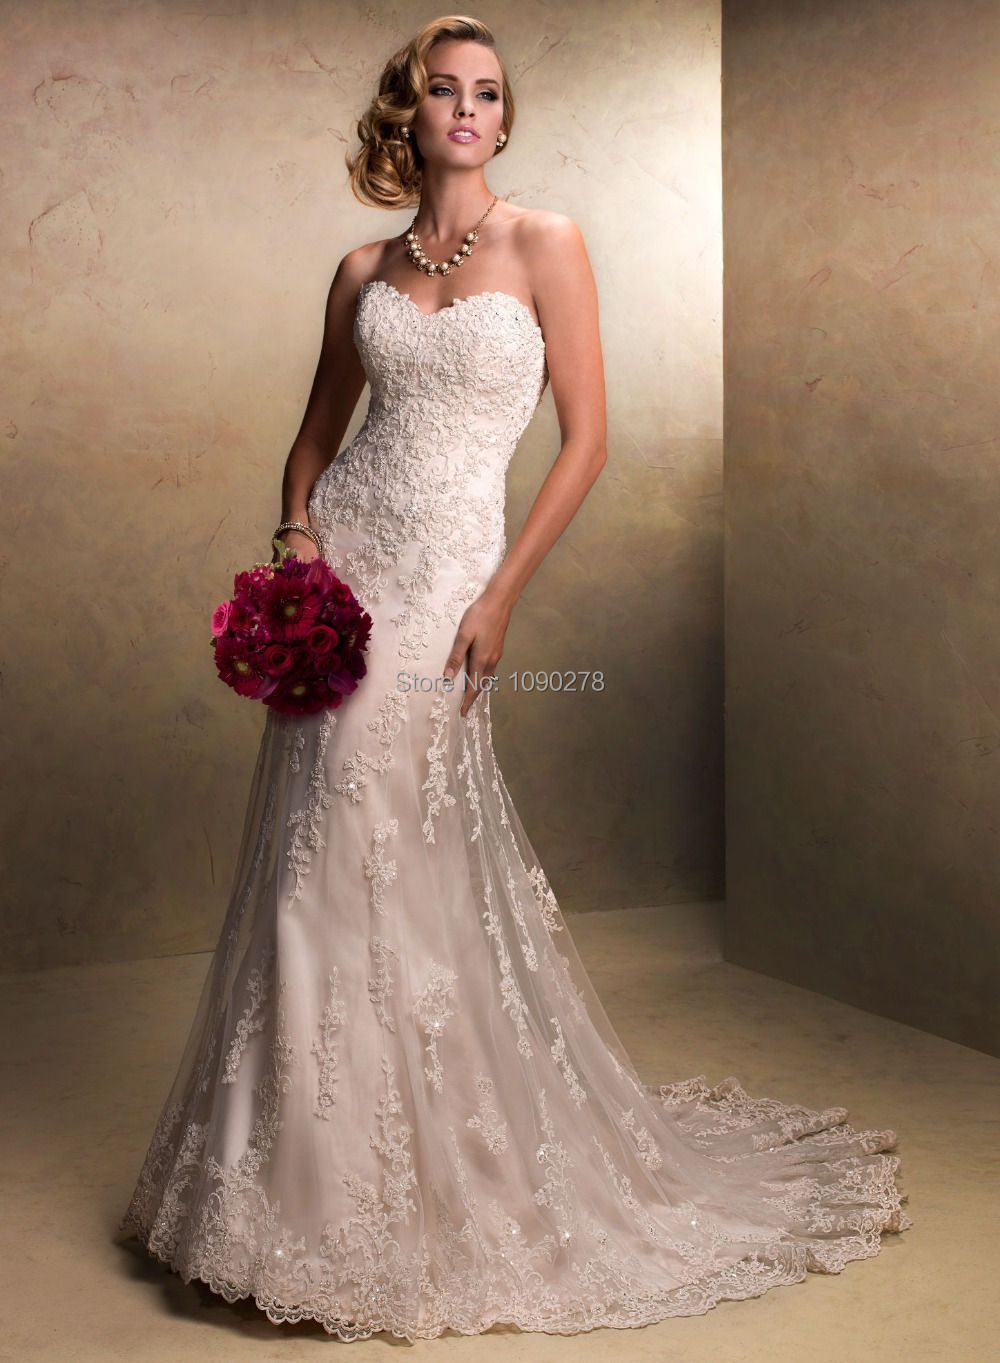 Designer New Ivory Lace Applique Sweetheart Removable Straps Sequin 2015 Wedding Dress Mermaid(China (Mainland))